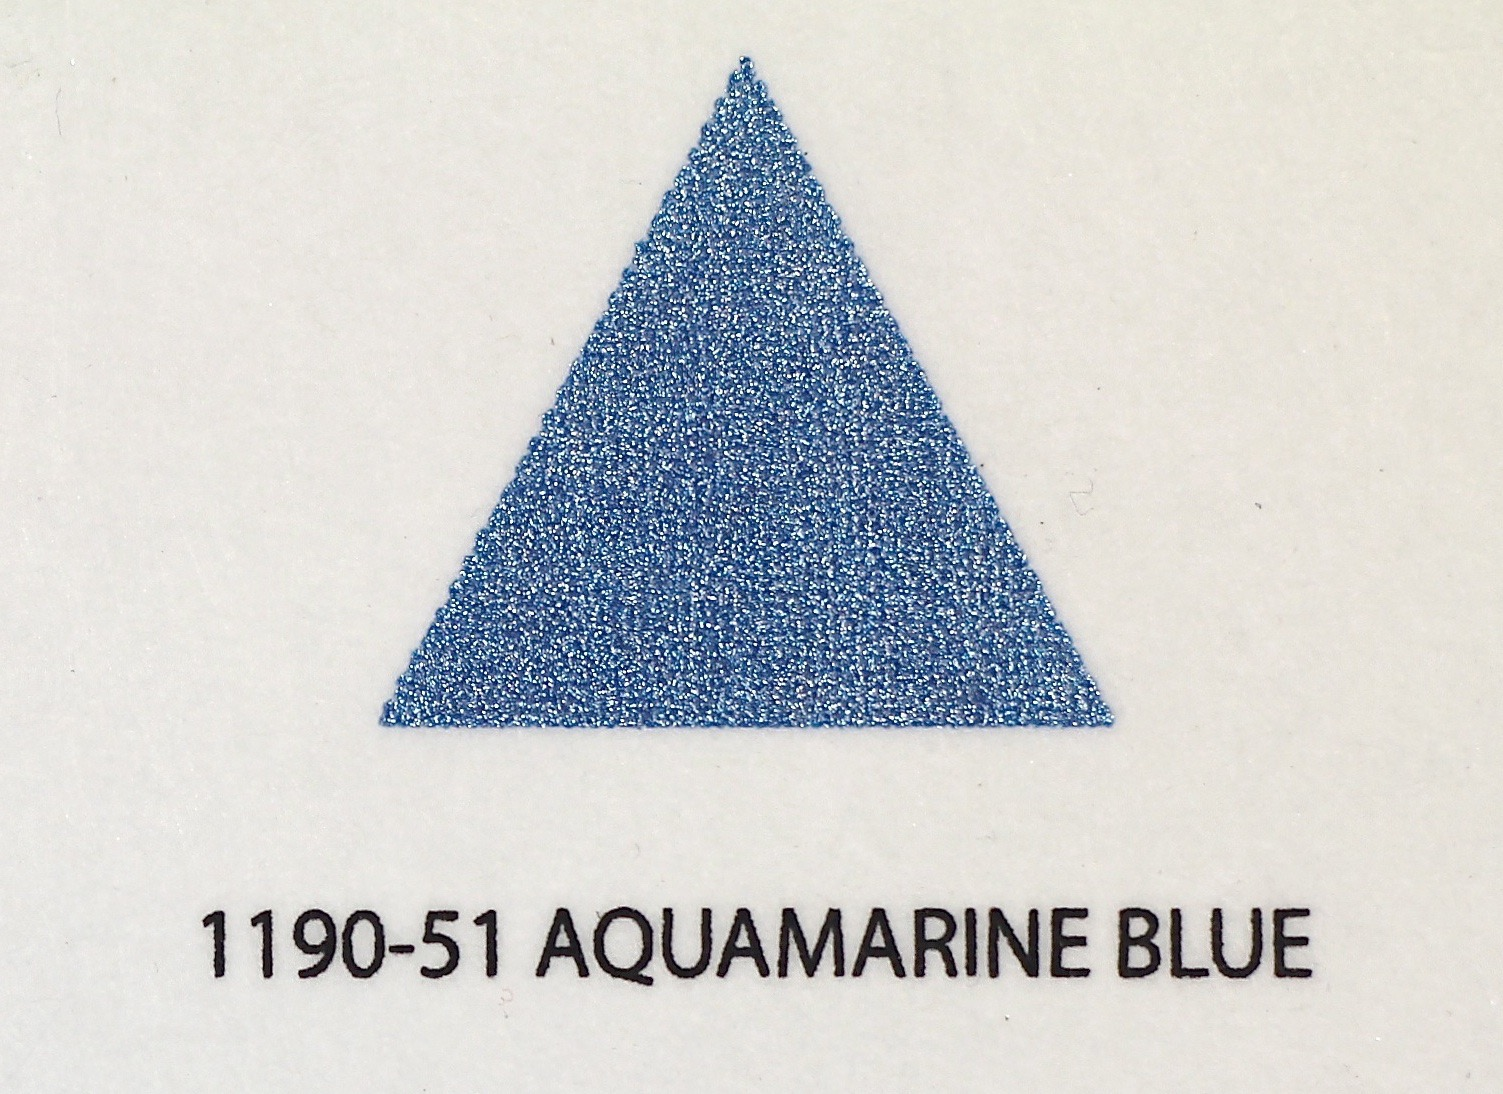 1190-51 Aquamarine Blue